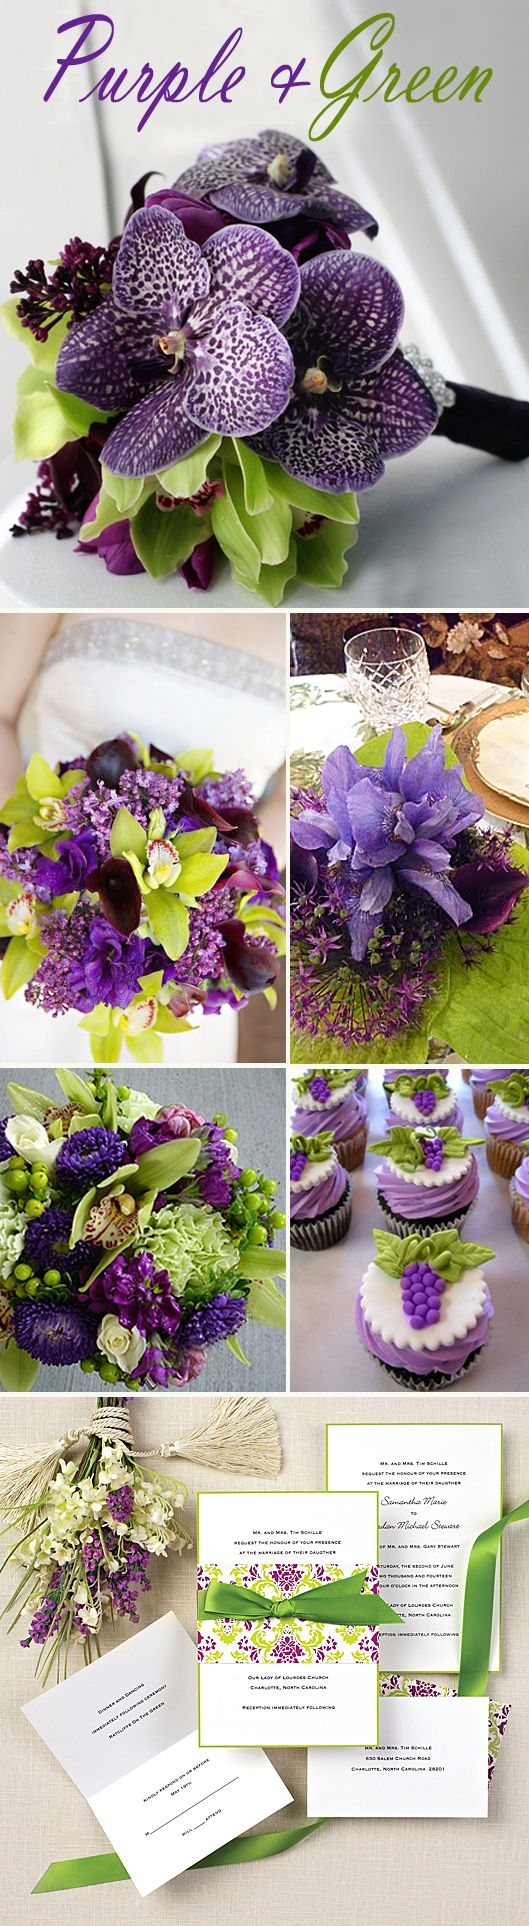 Your Wedding Color – Purple « Exclusively Weddings Blog | Wedding Planning Tips and More